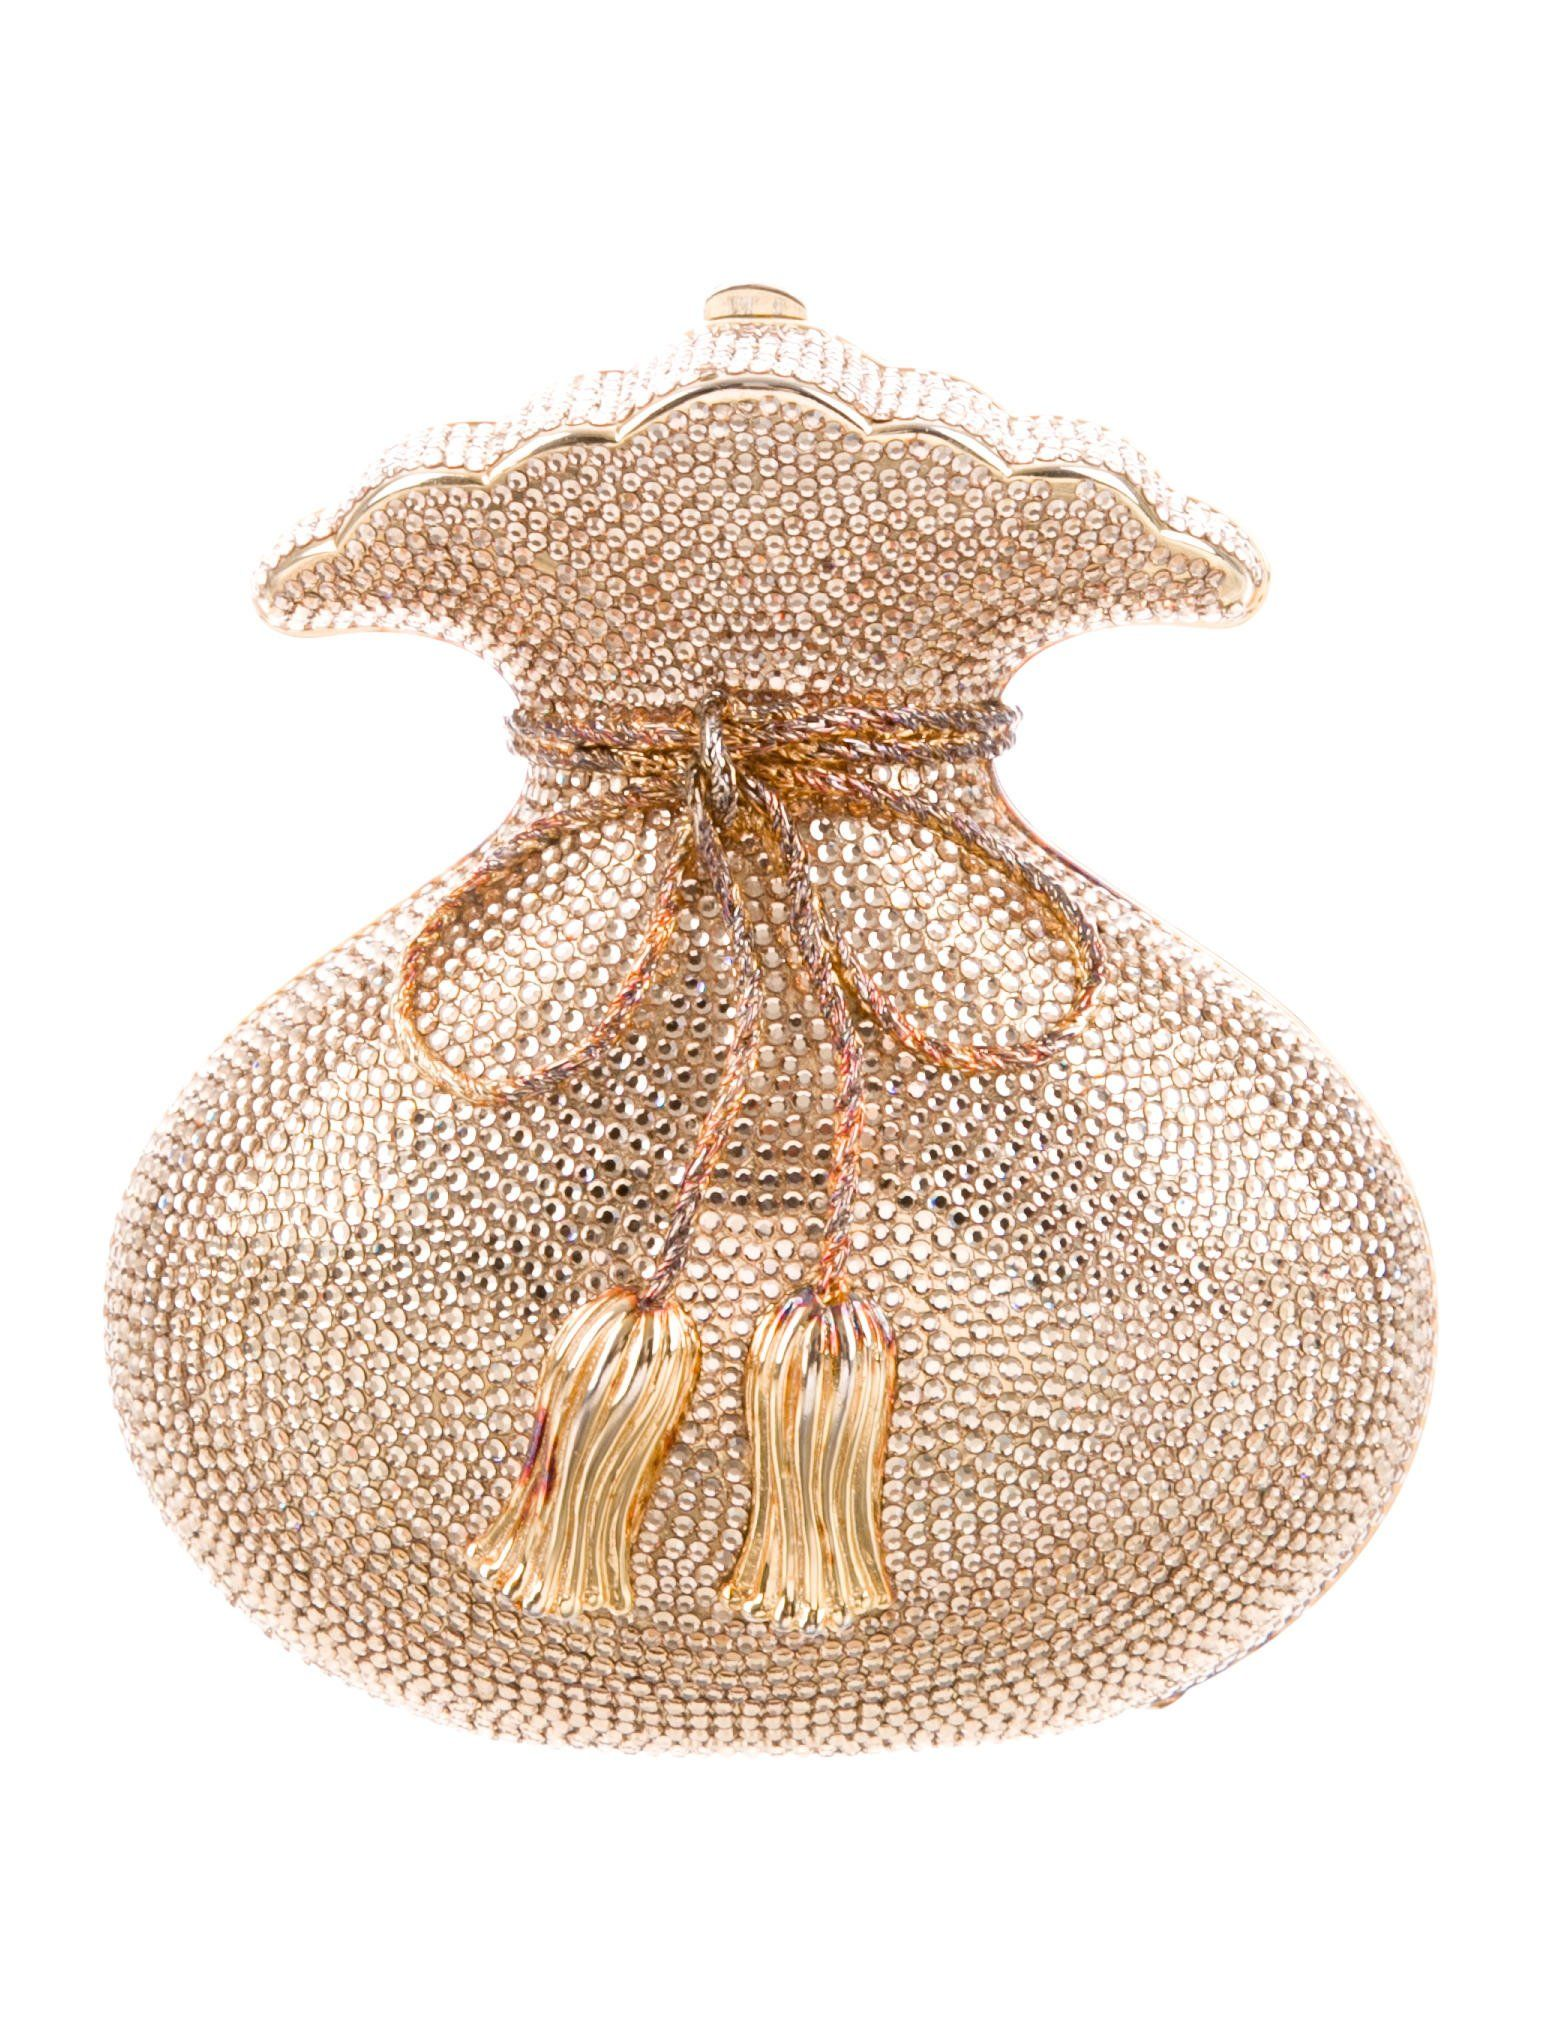 5b684d44007 GABRIELLE'S AMAZING FANTASY CLOSET | Gold-tone crystal embellished Judith  Leiber clutch bag with gold-tone hardware, single drop-in snake chain  shoulder ...